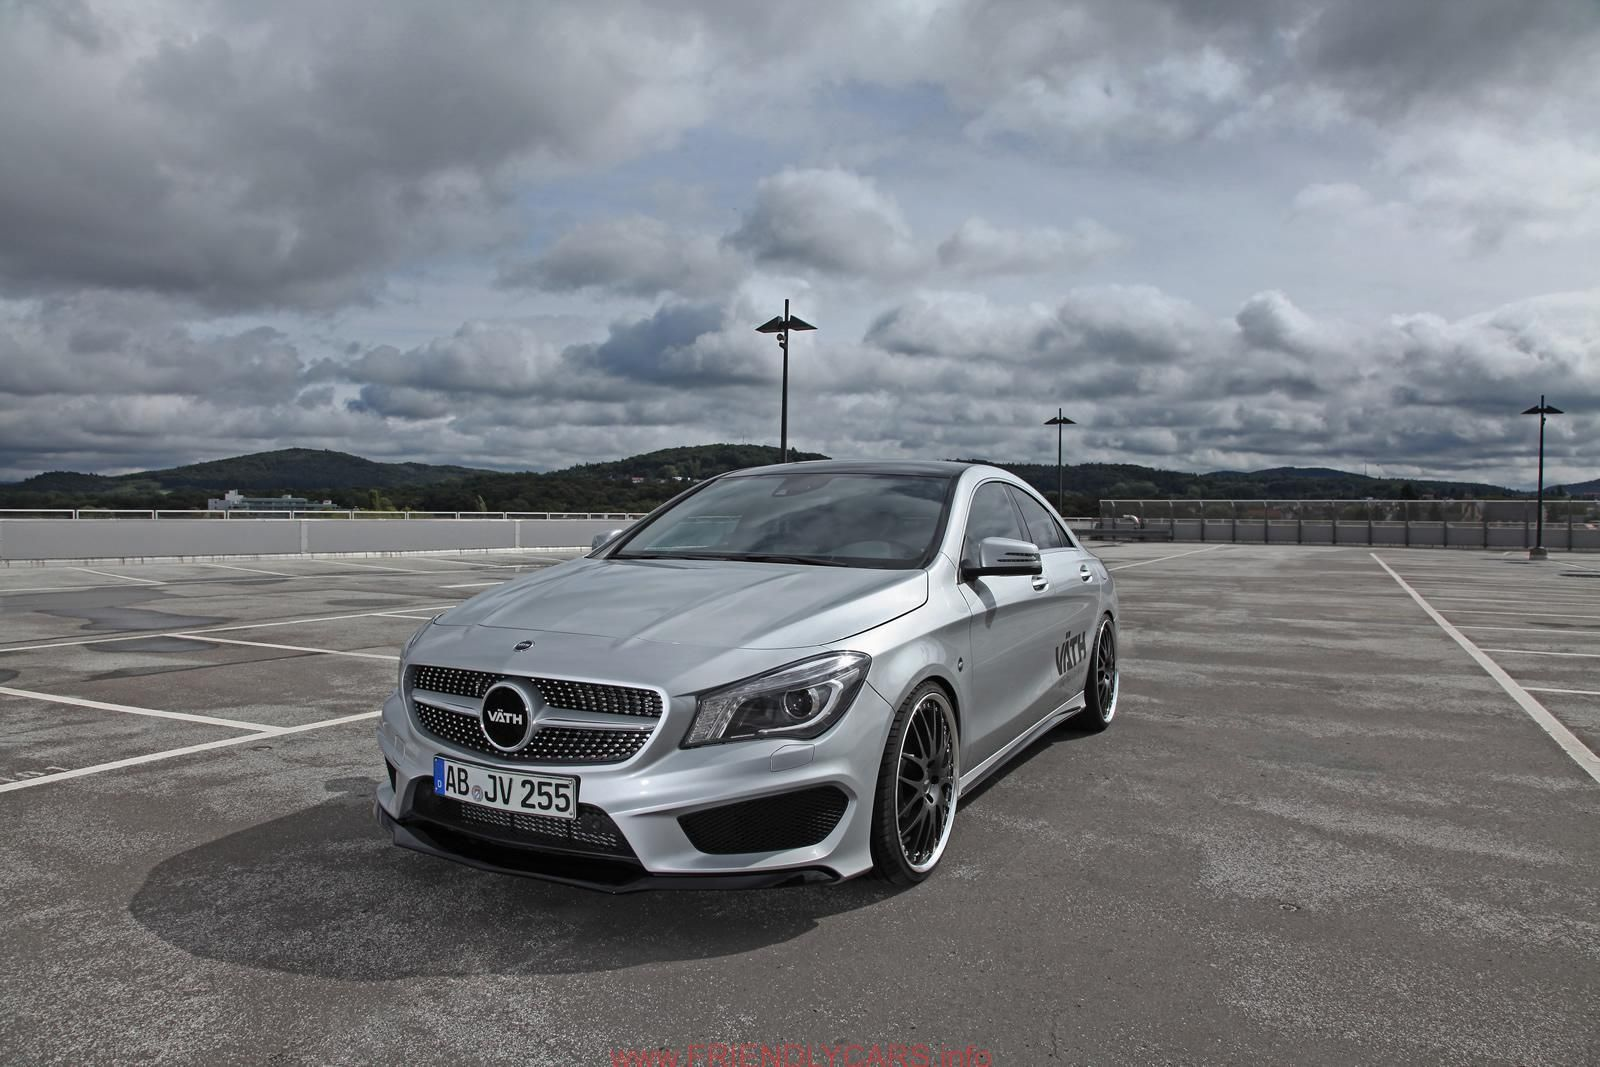 Cool Mercedes Benz Cla 250 Wallpaper Car Images Hd Mercedes Benz Cla